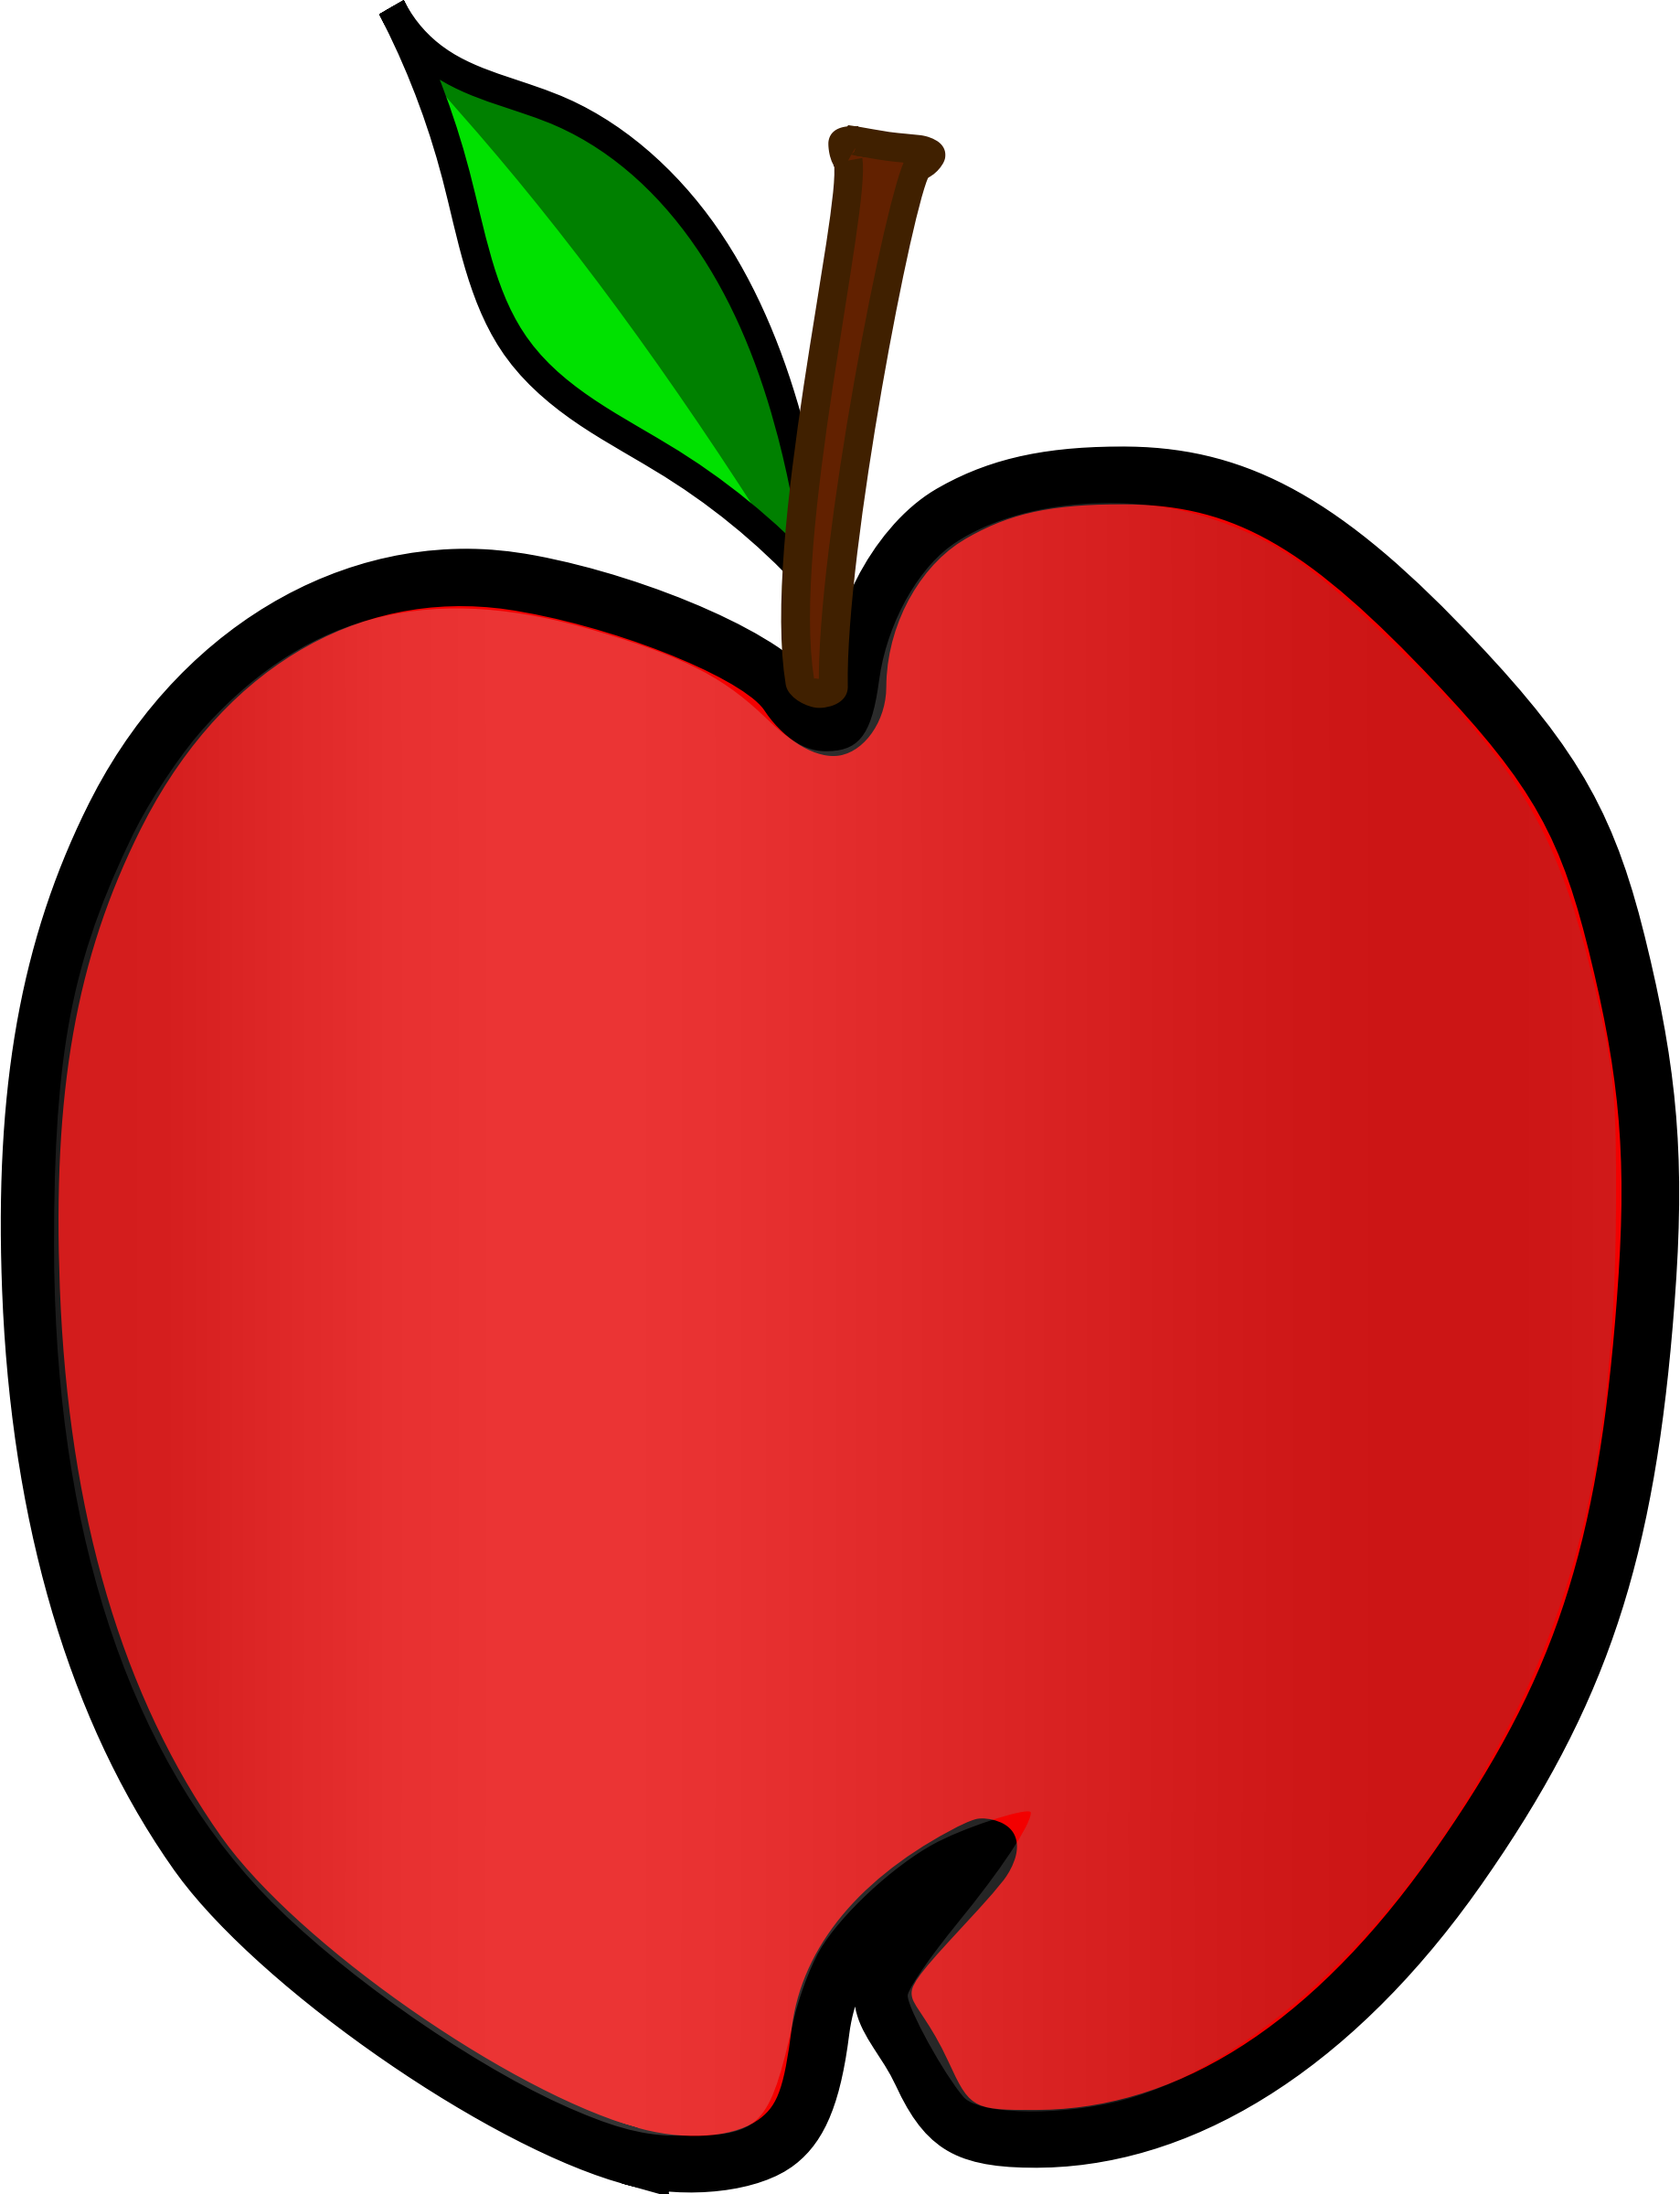 Apple day clipart image transparent download Best Teacher Apple Clipart #27448 - Clipartion.com image transparent download